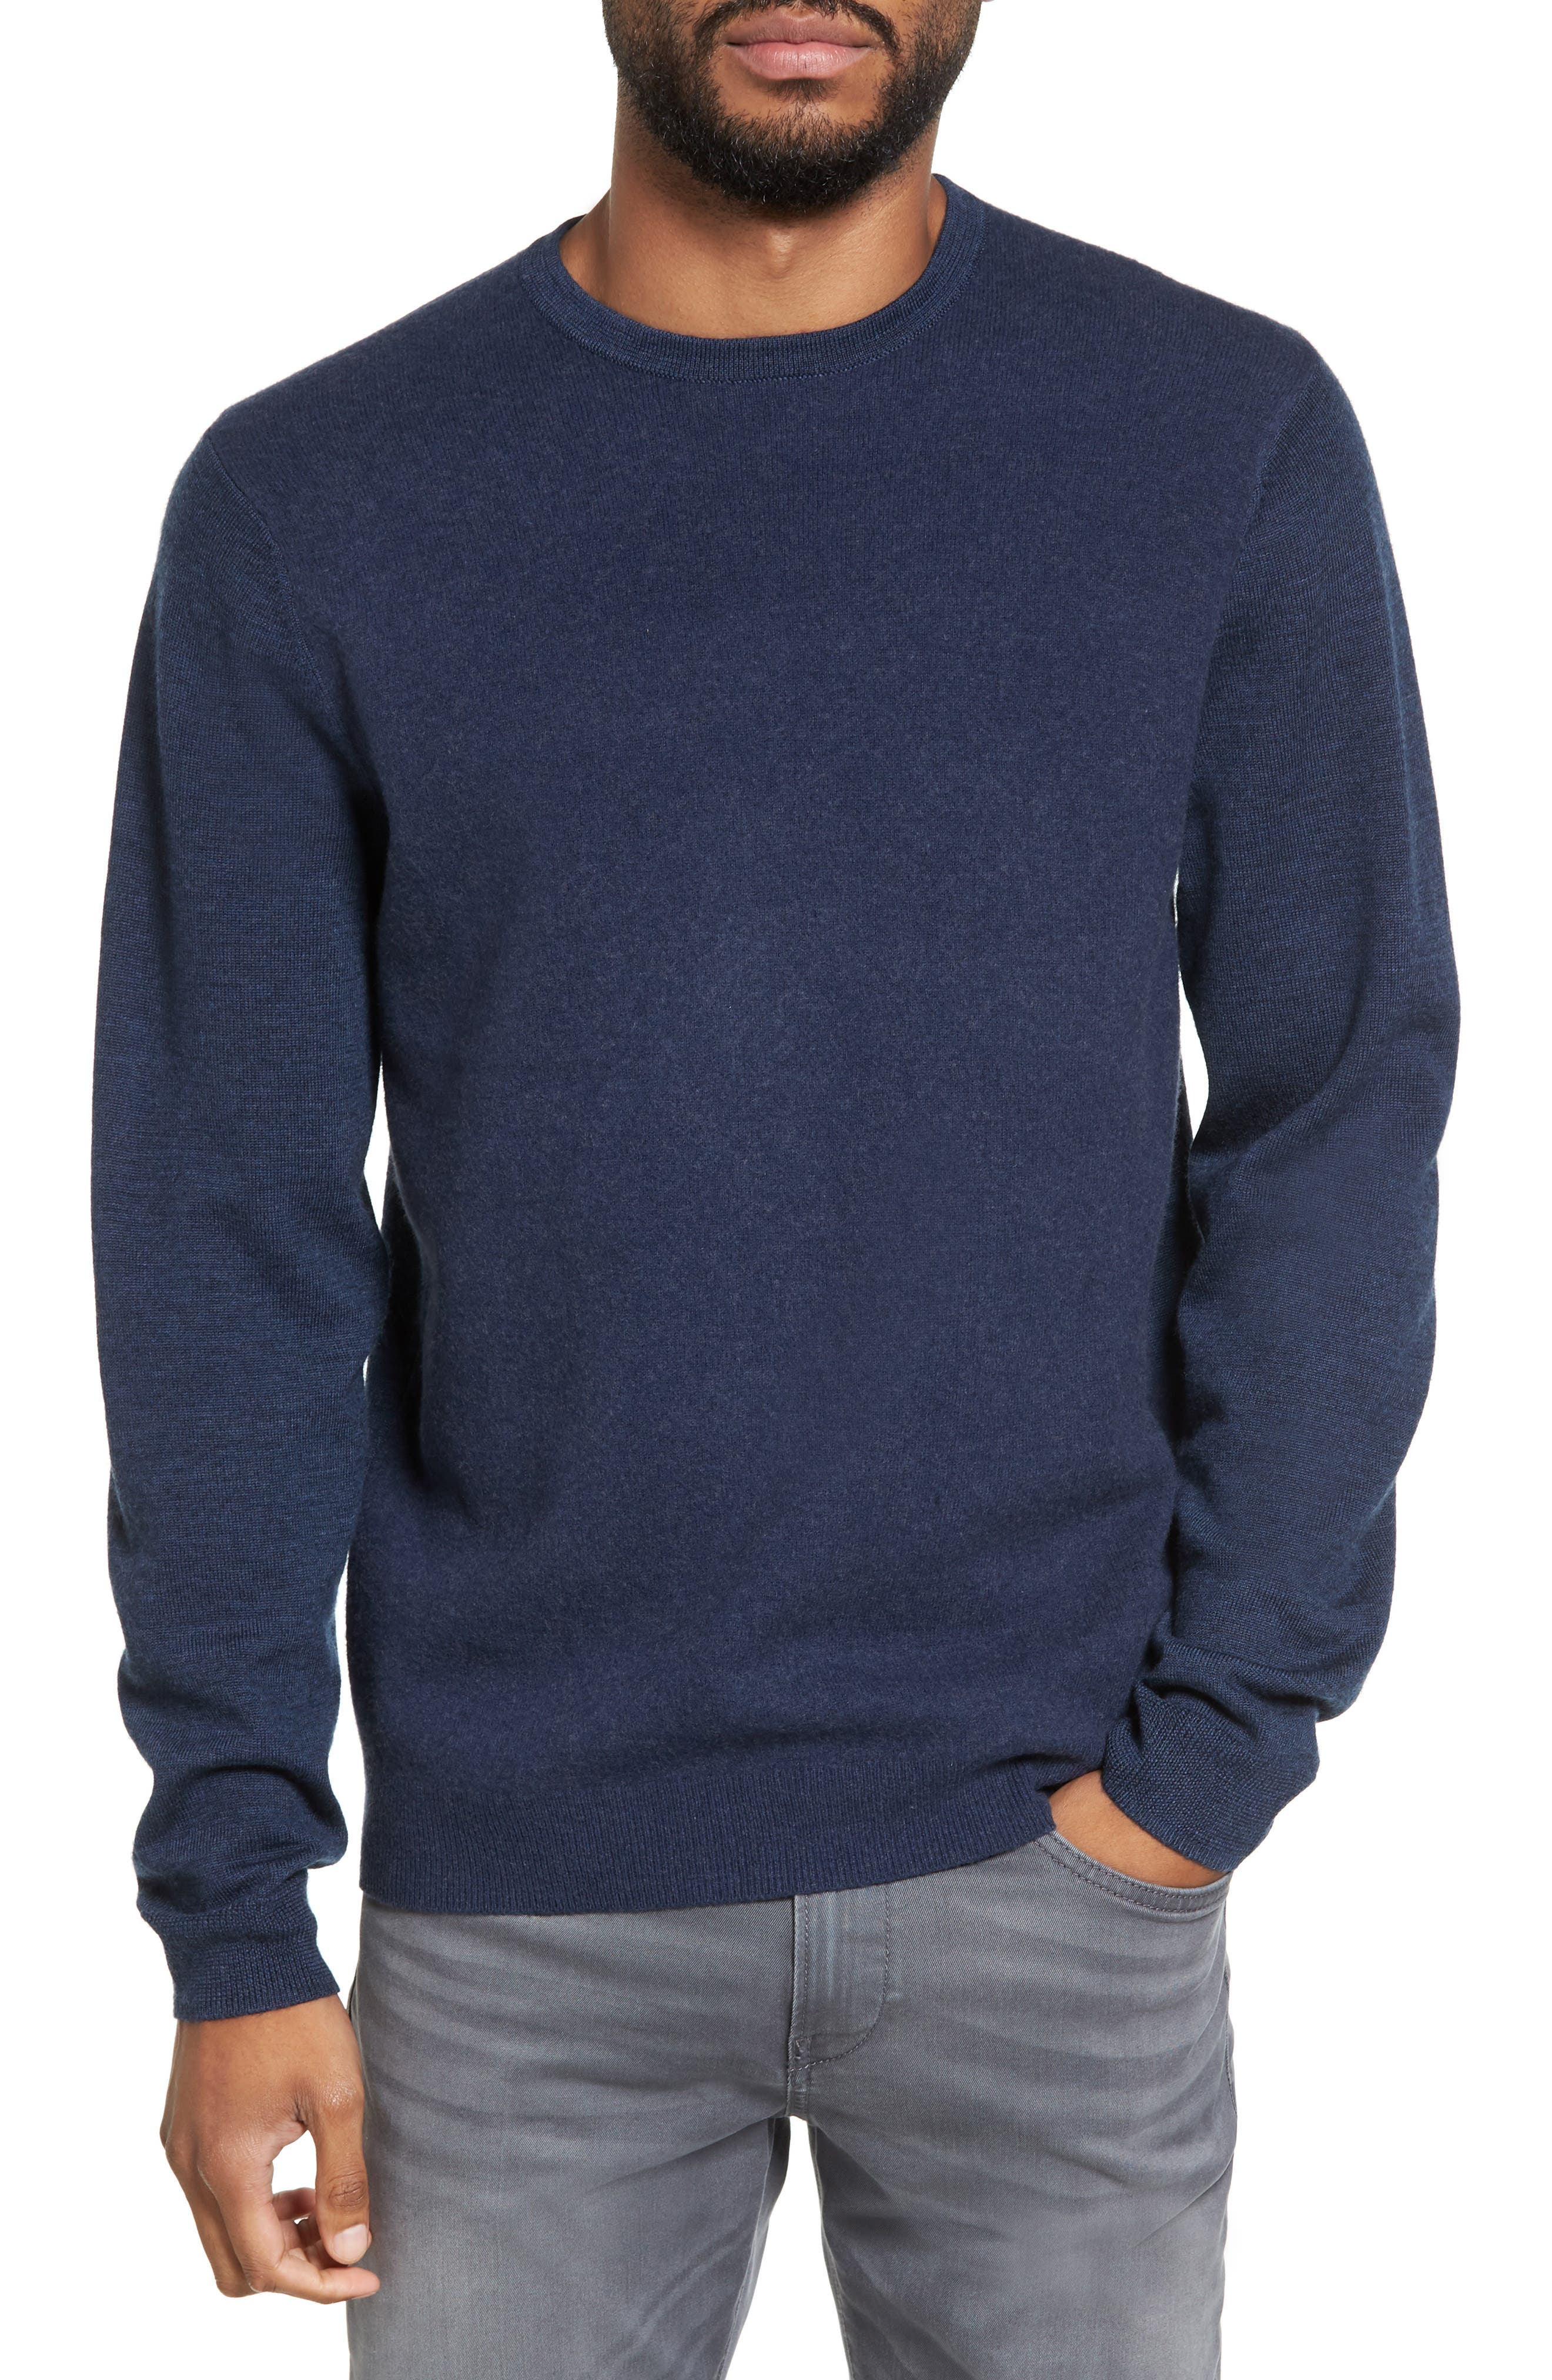 Calibrate Merino Wool Blend Sweater